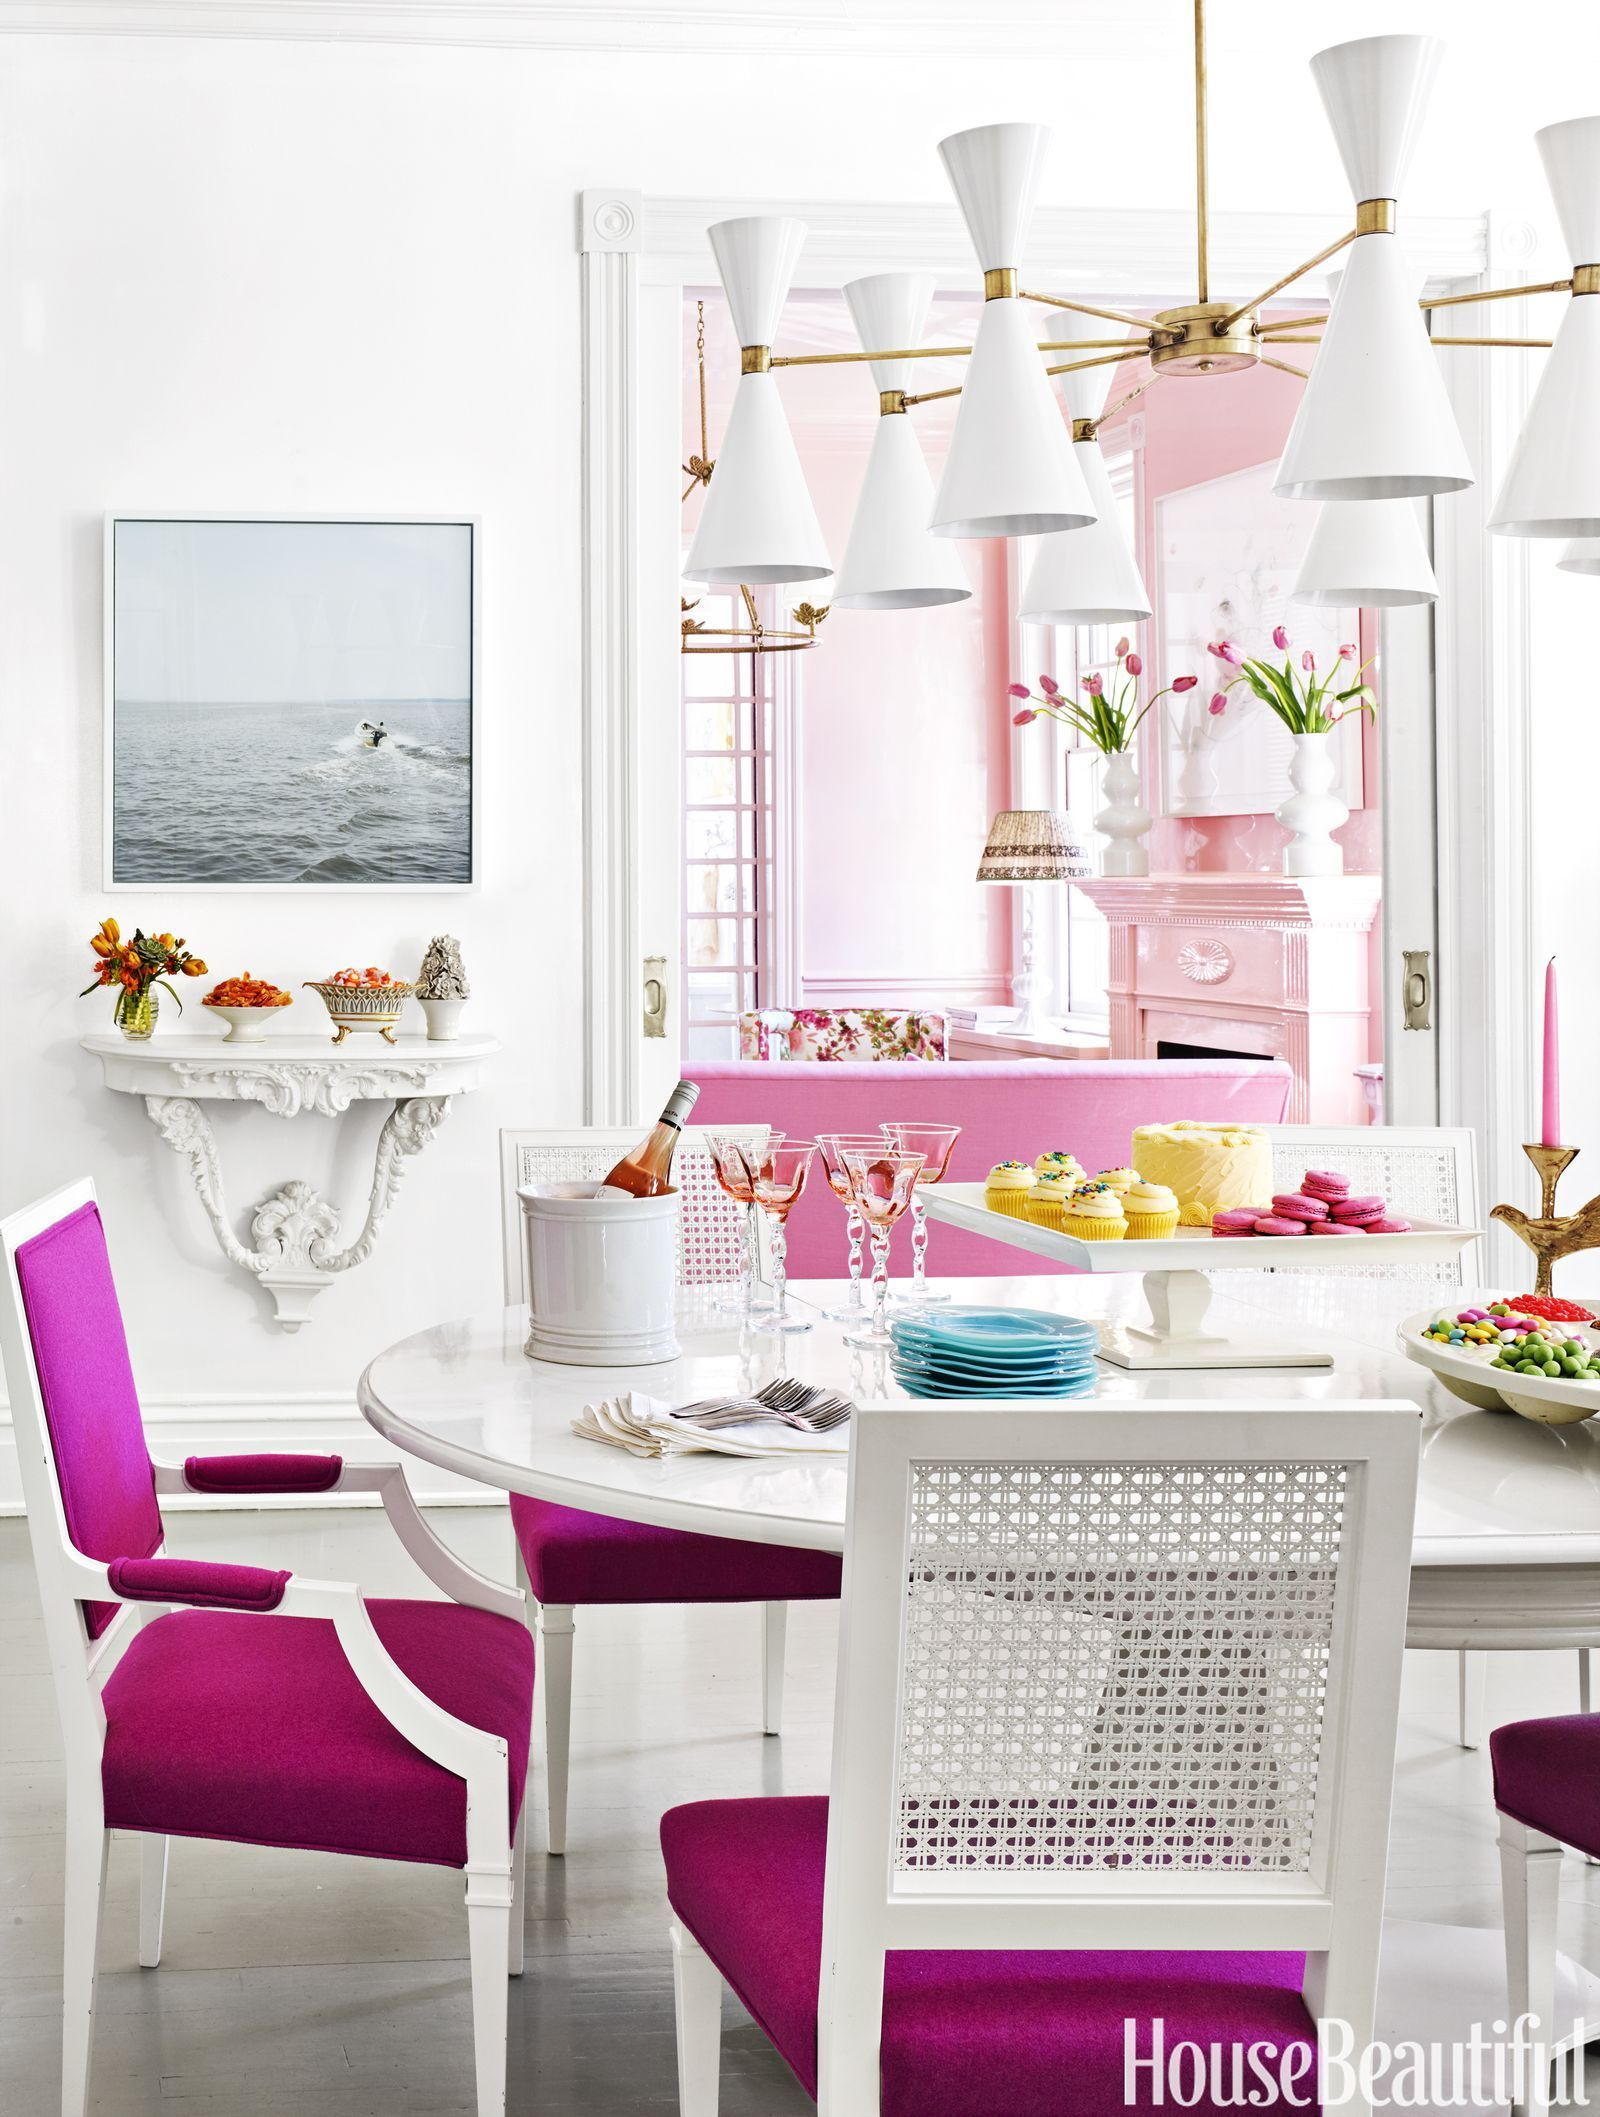 Home hall decke design einfach hot pink cushions  a coat of a highgloss white contrasts with